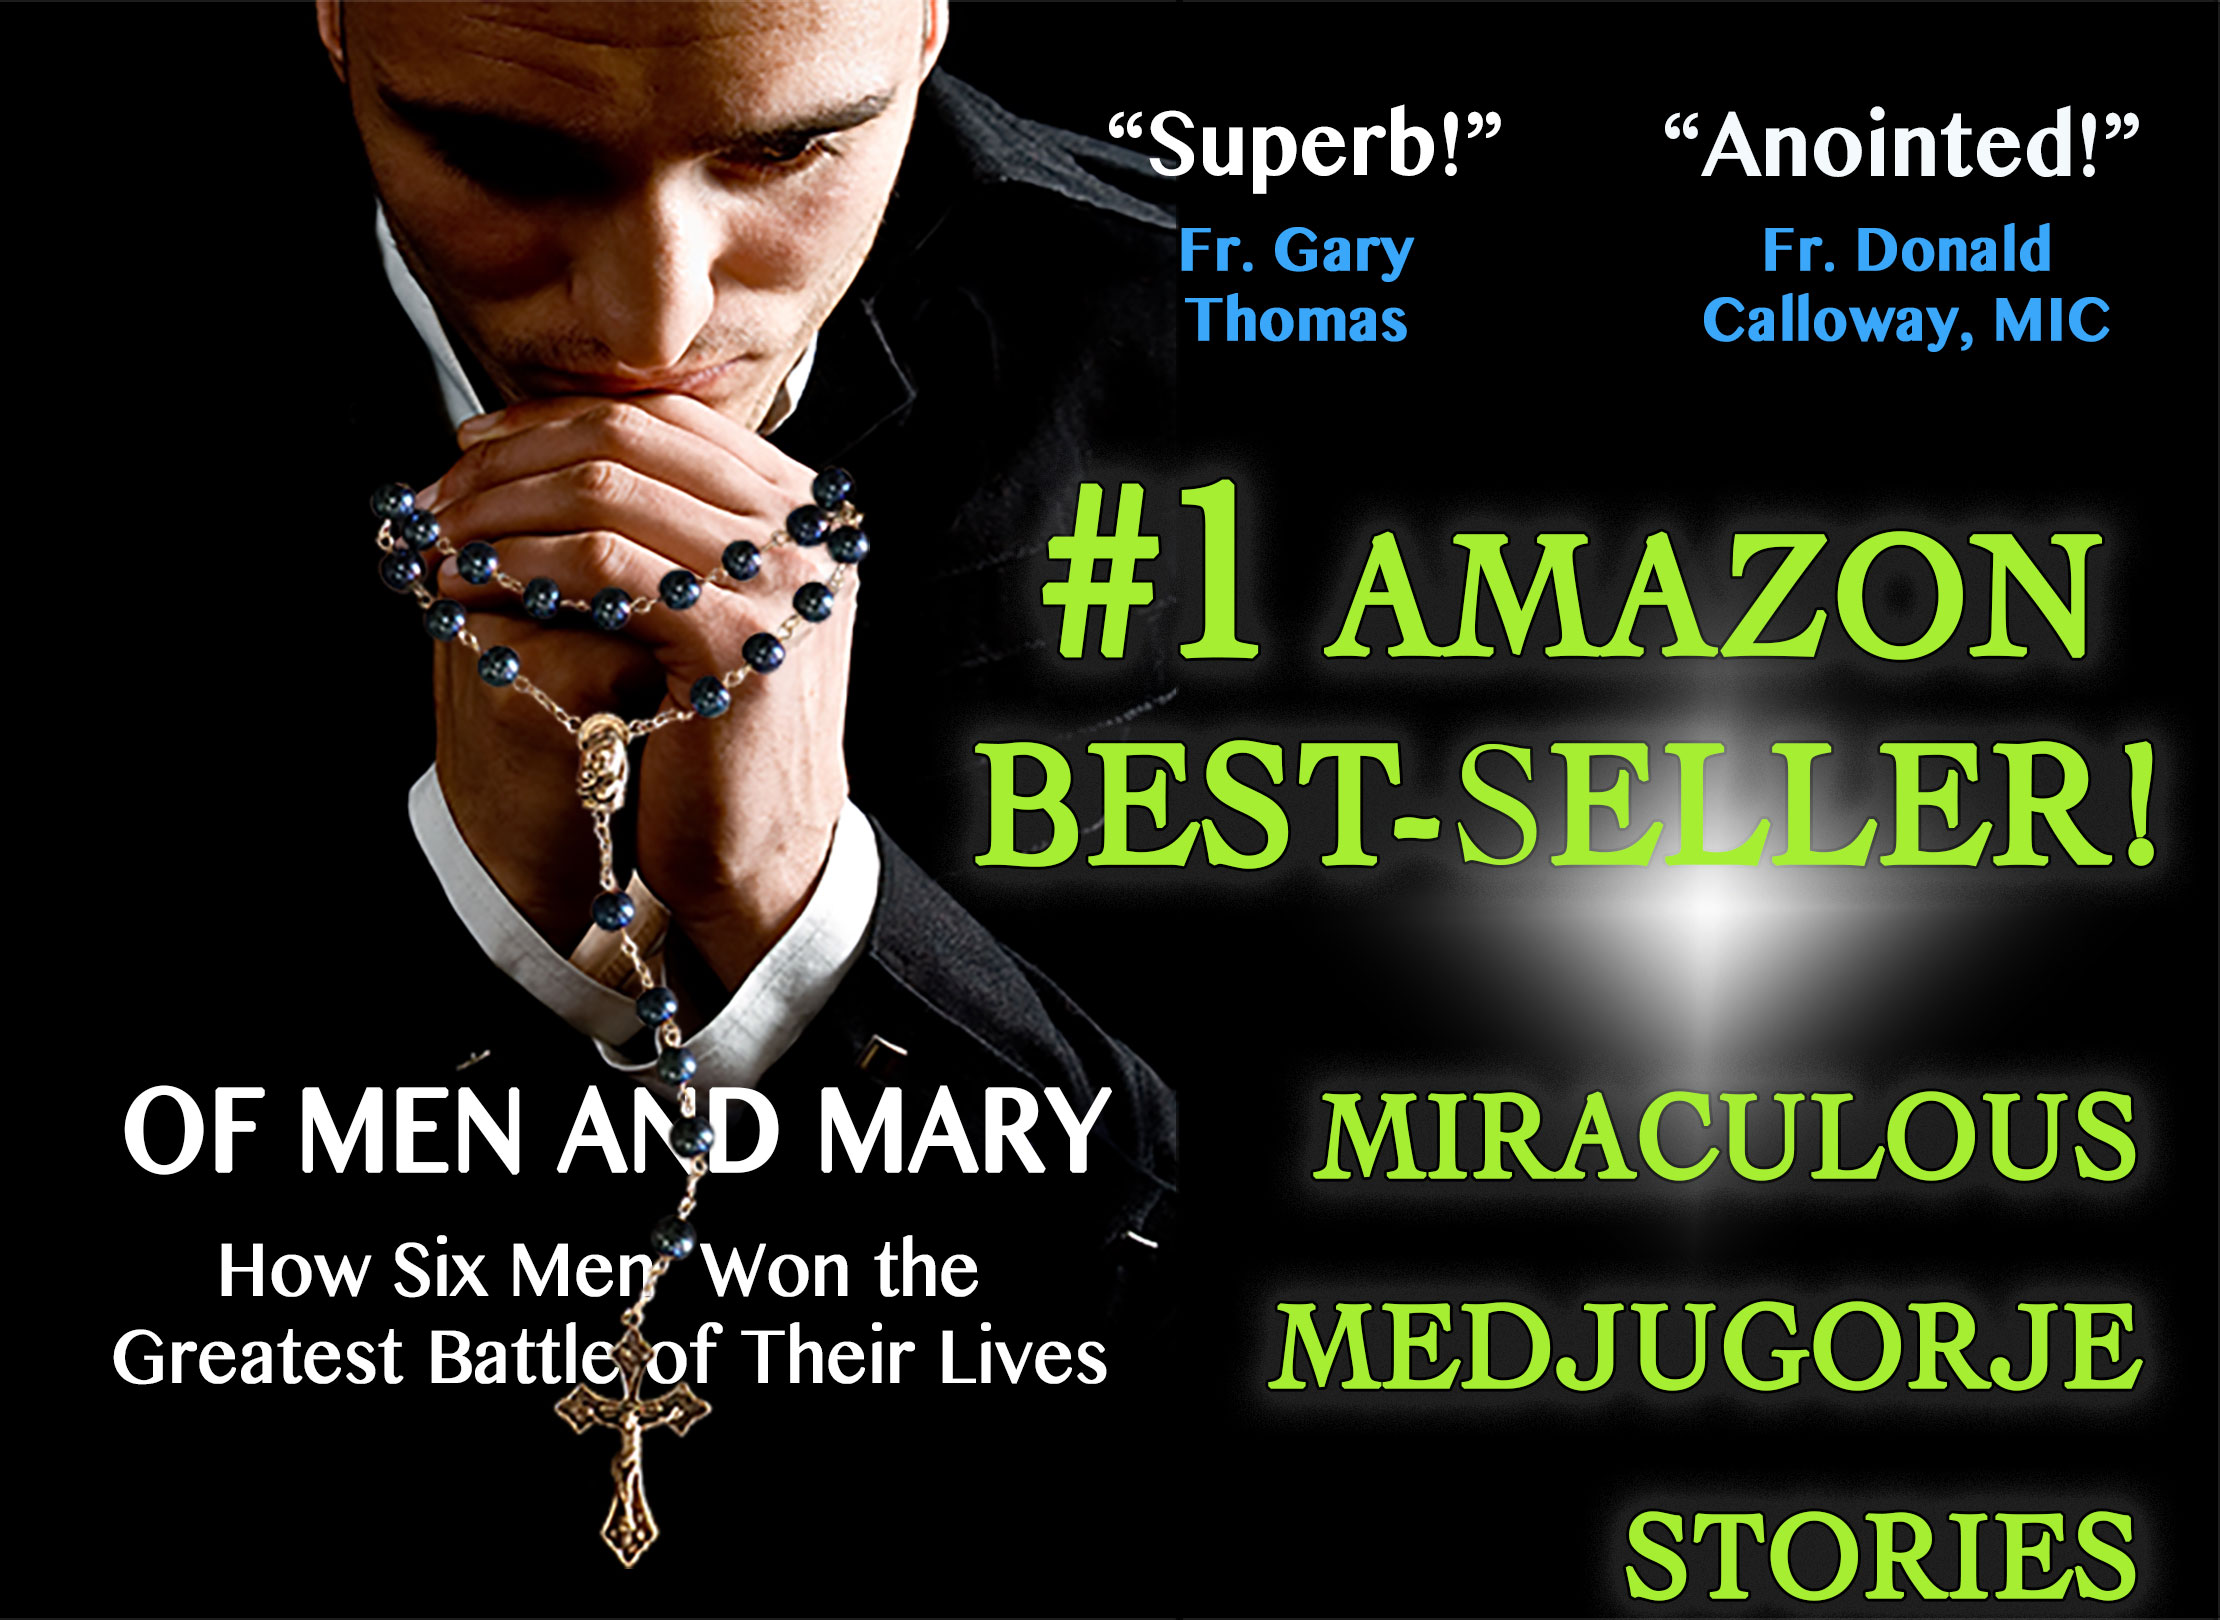 A new Medjugorje book! OF MEN AND MARY: How Six Men Won the Greatest Battle of Their Lives. Endorsed by Fr. Donald Calloway and Fr. Gary Thomas.